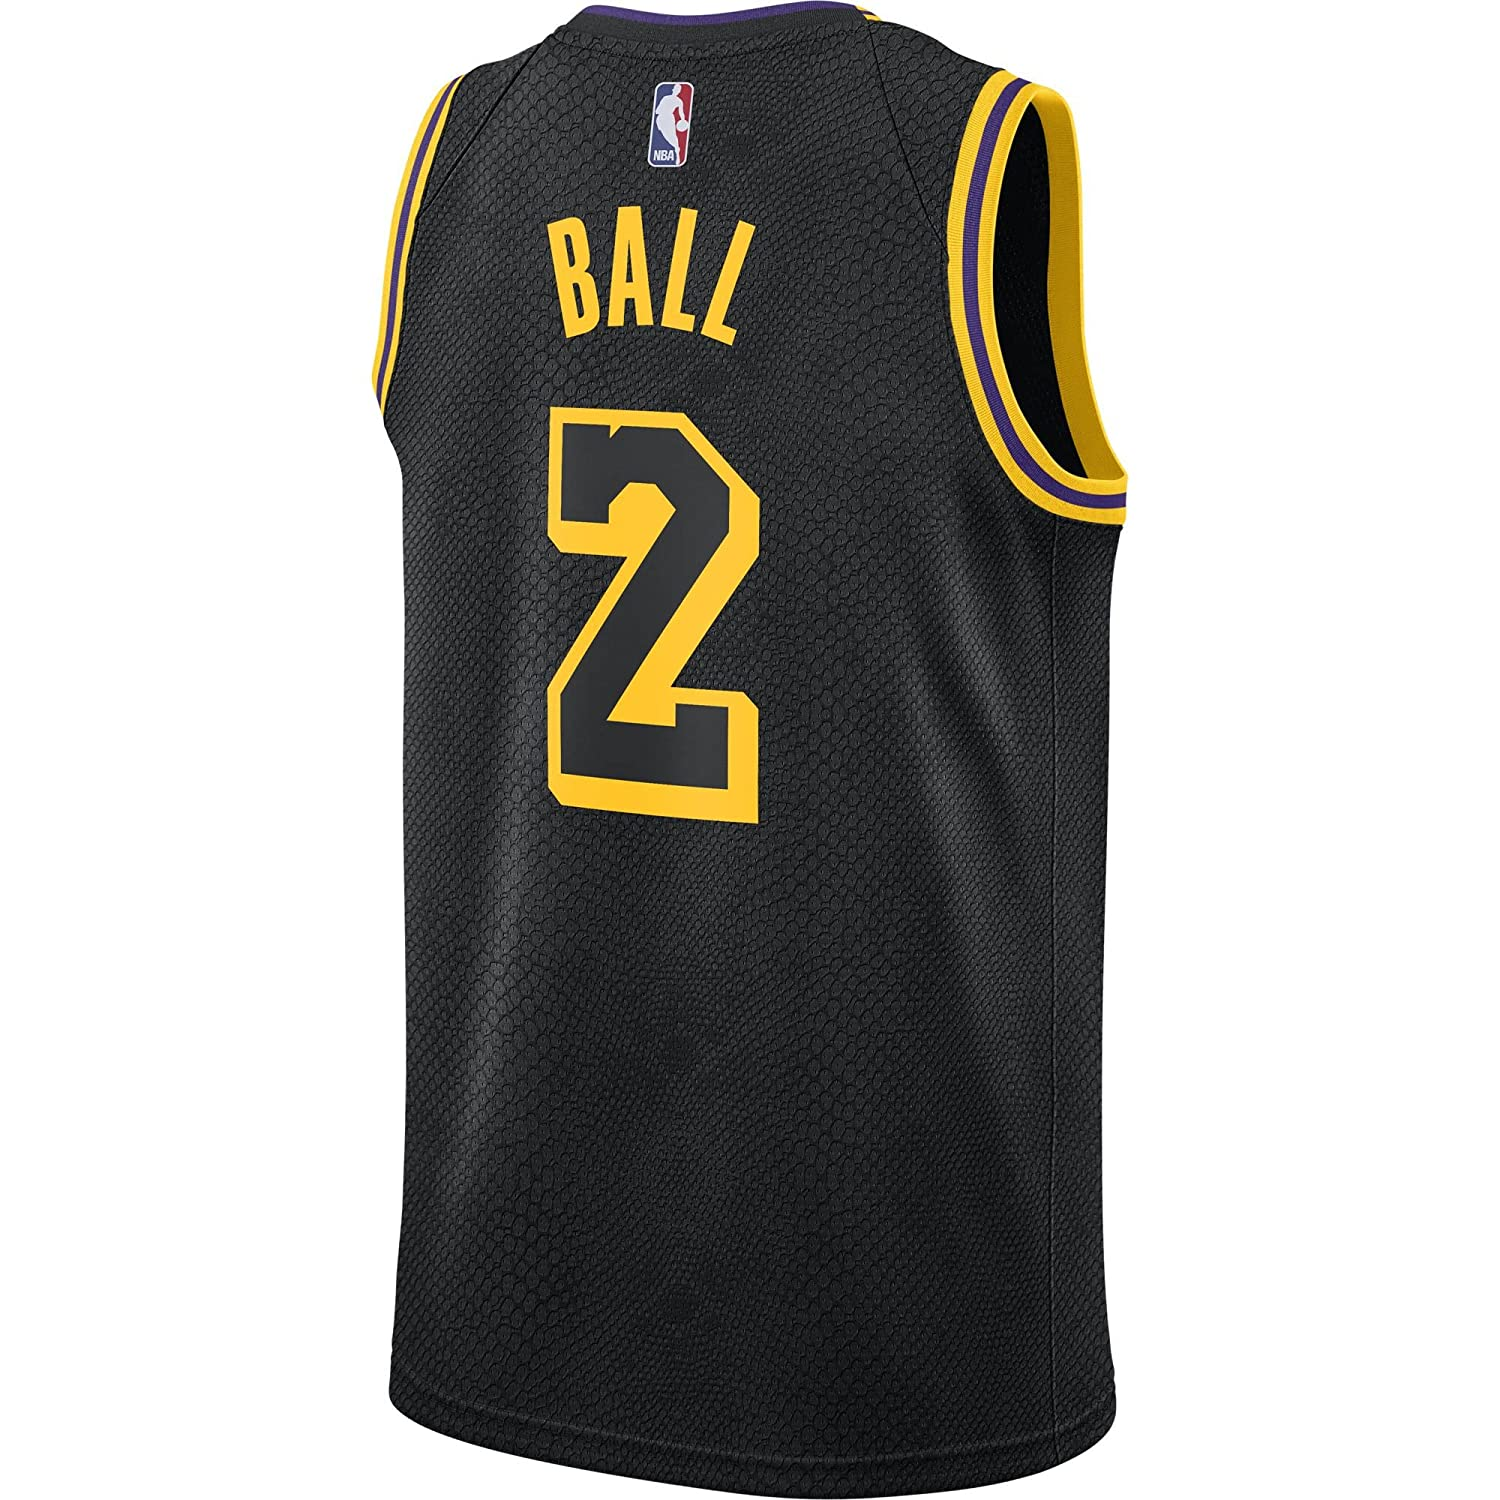 Nike NBA Los Angeles Lakers Lonzo Ball 2 2017 2018 City Edition Black Mamba Jersey Oficial Away, Camiseta de Hombre: Amazon.es: Ropa y accesorios